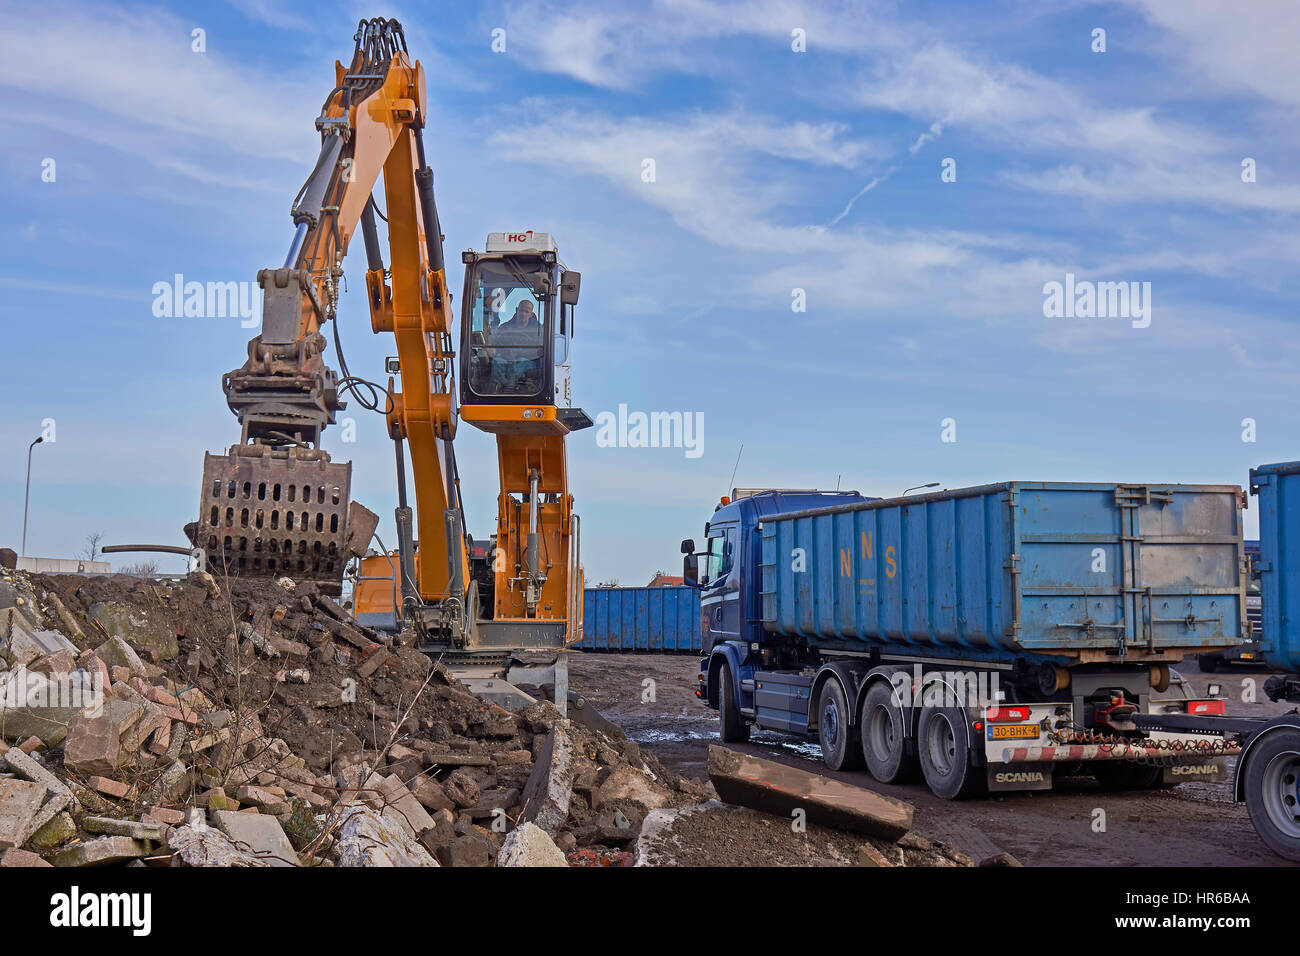 Grapple Truck Stock Photos & Grapple Truck Stock Images - Alamy